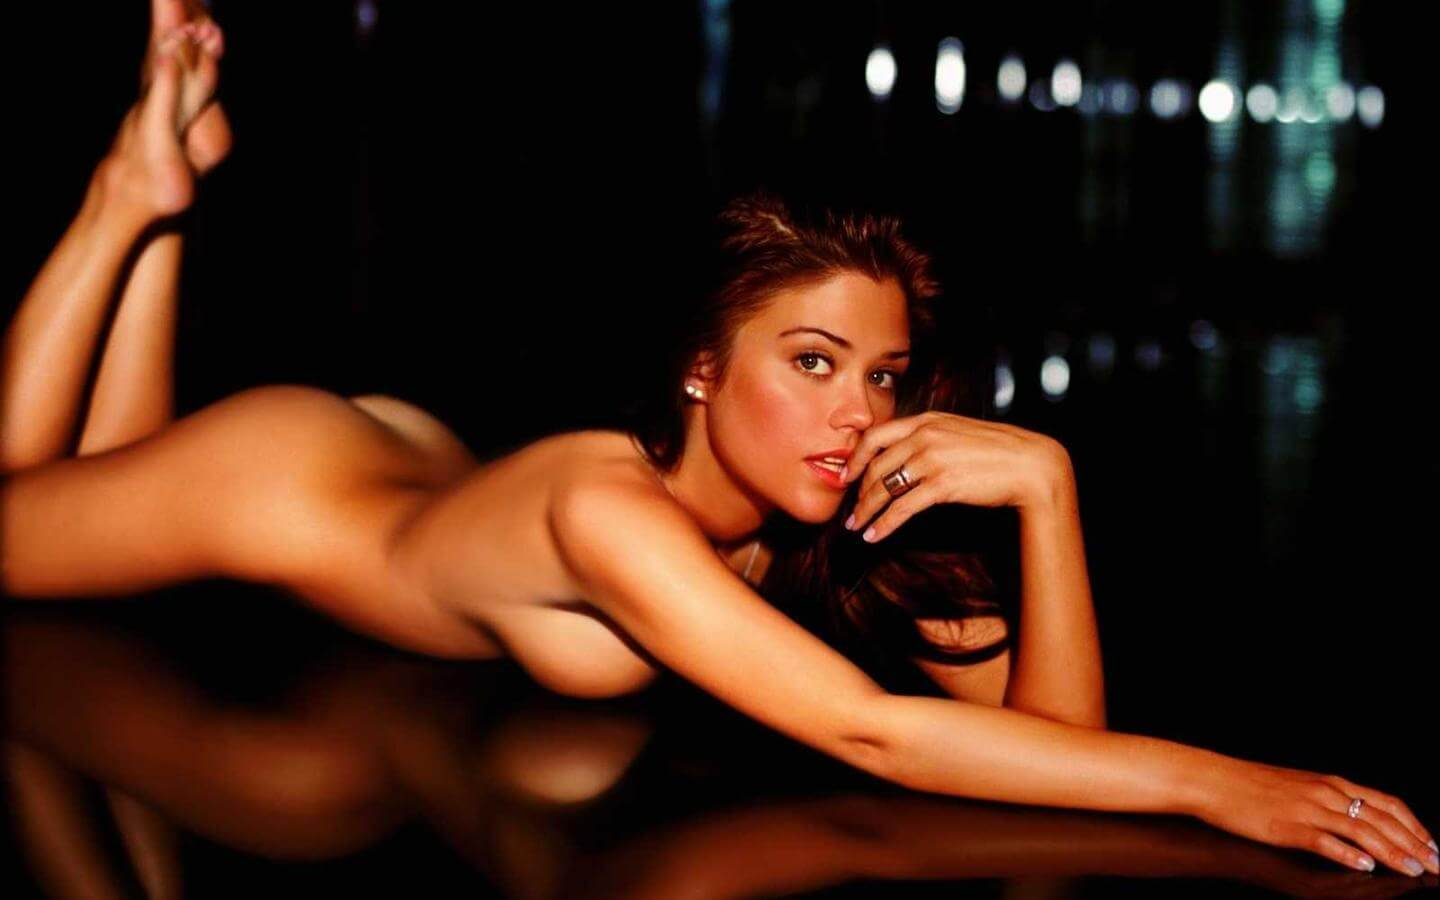 Susan ward naked pictures